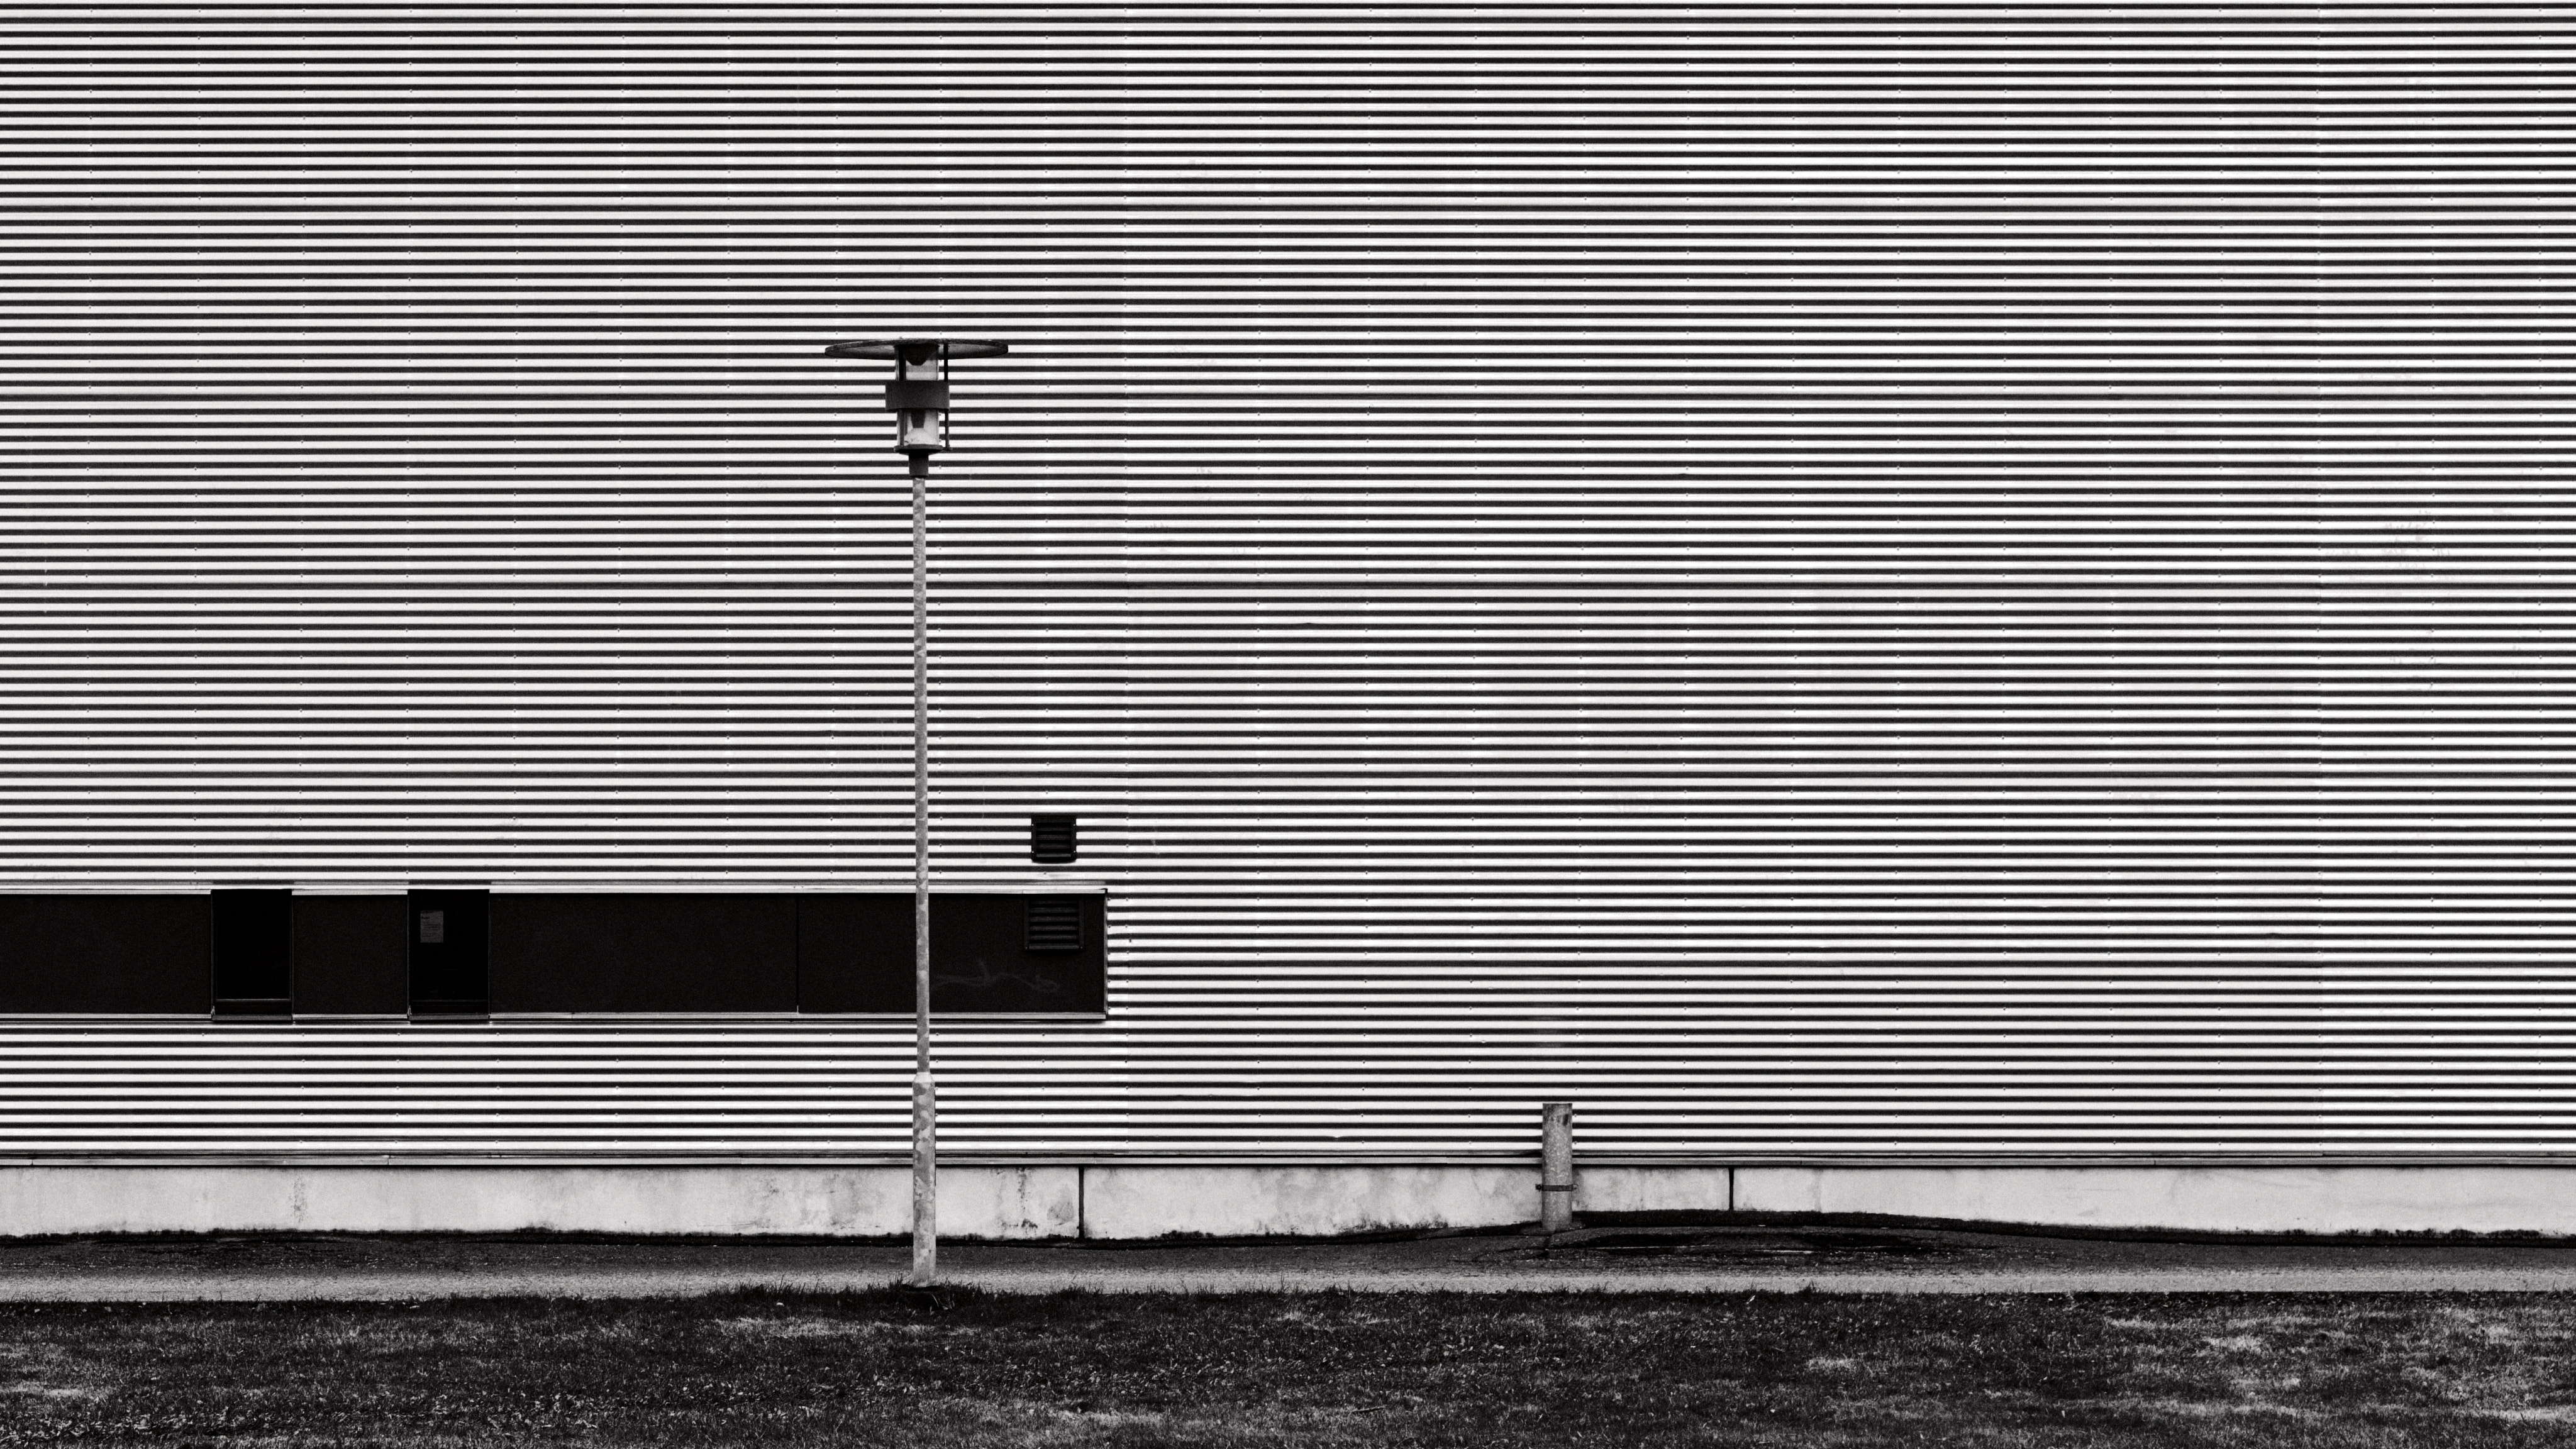 a more abstract photo. extremely repetitive texture on a massive wall - it's basically bent sheet metal - and a couple of details. a lamppost on the left, some sort of a pipe on the right, and possibly air vents with a darker background on the left.